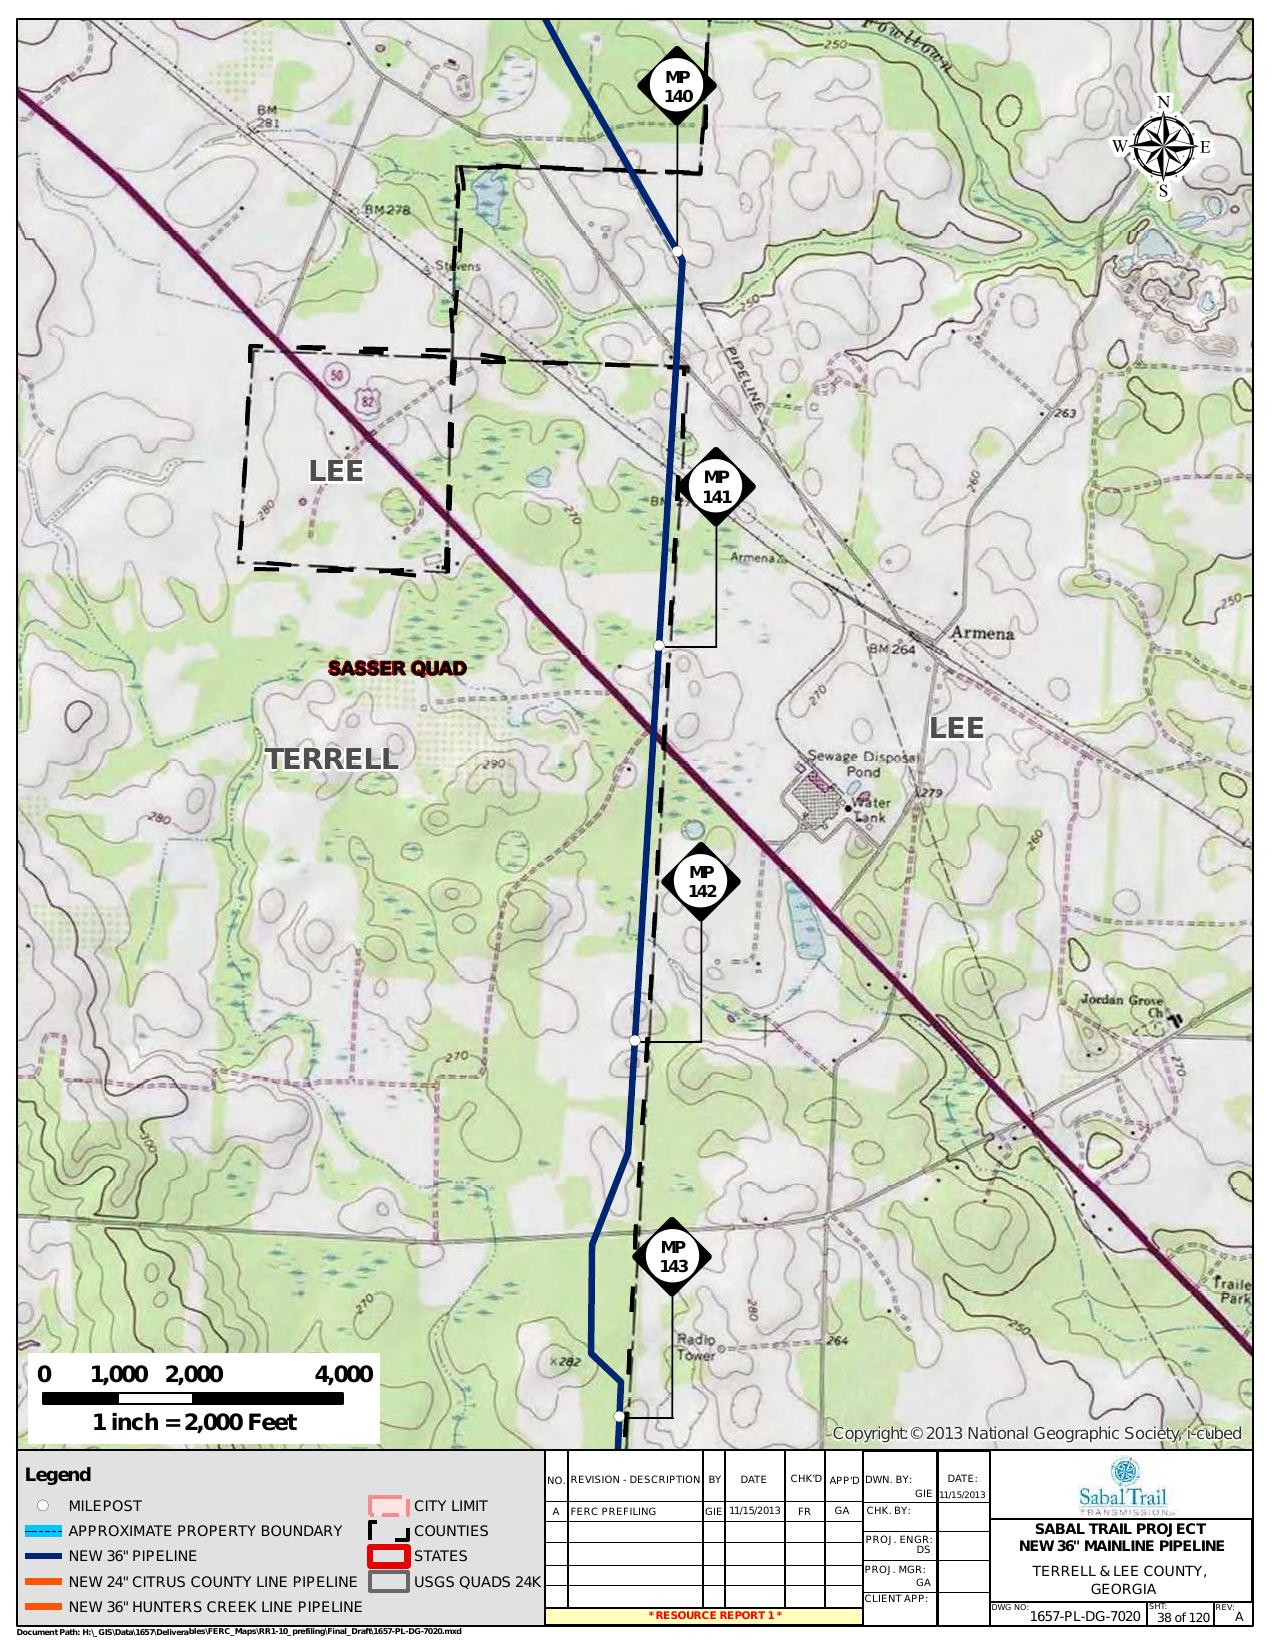 Armena, Terrell and Lee County, Georgia, in General Project Description, by SpectraBusters, for FERC Docket No. PF14-1-000, 15 November 2013, converted by SpectraBusters